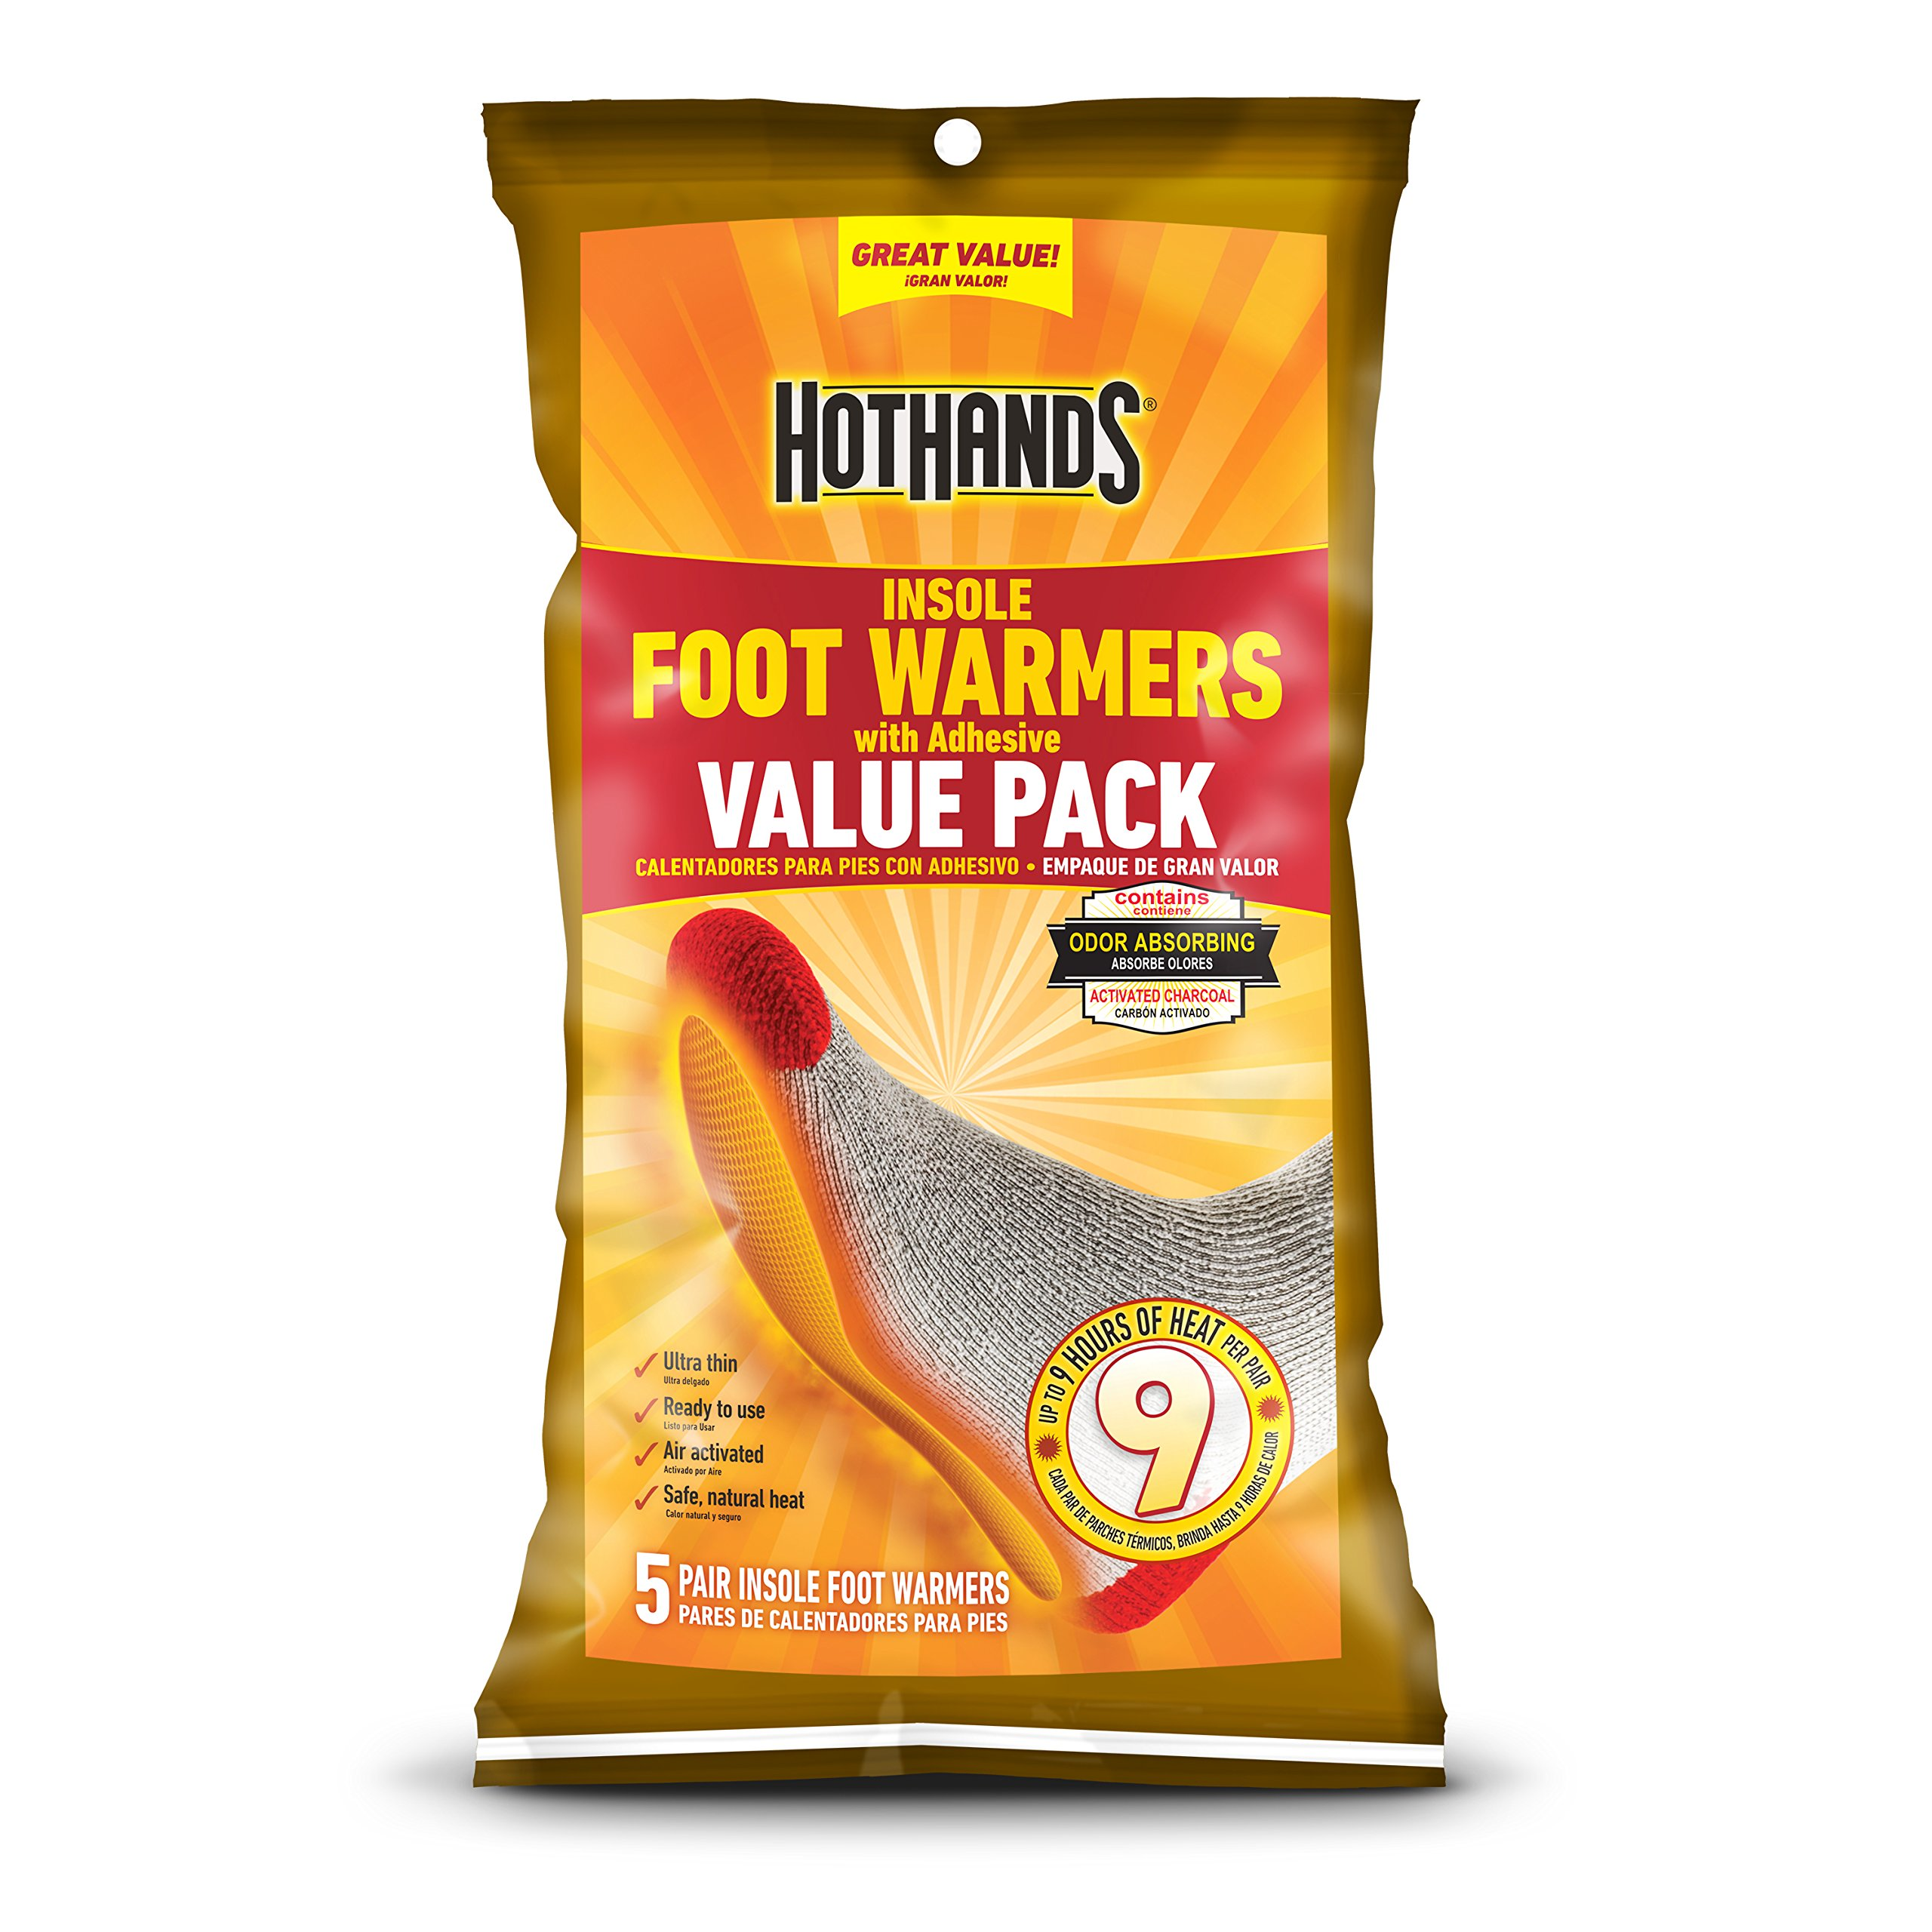 HotHands Insole Foot Warmers With Adhesive Value Pack (5-Pairs) by HotHands